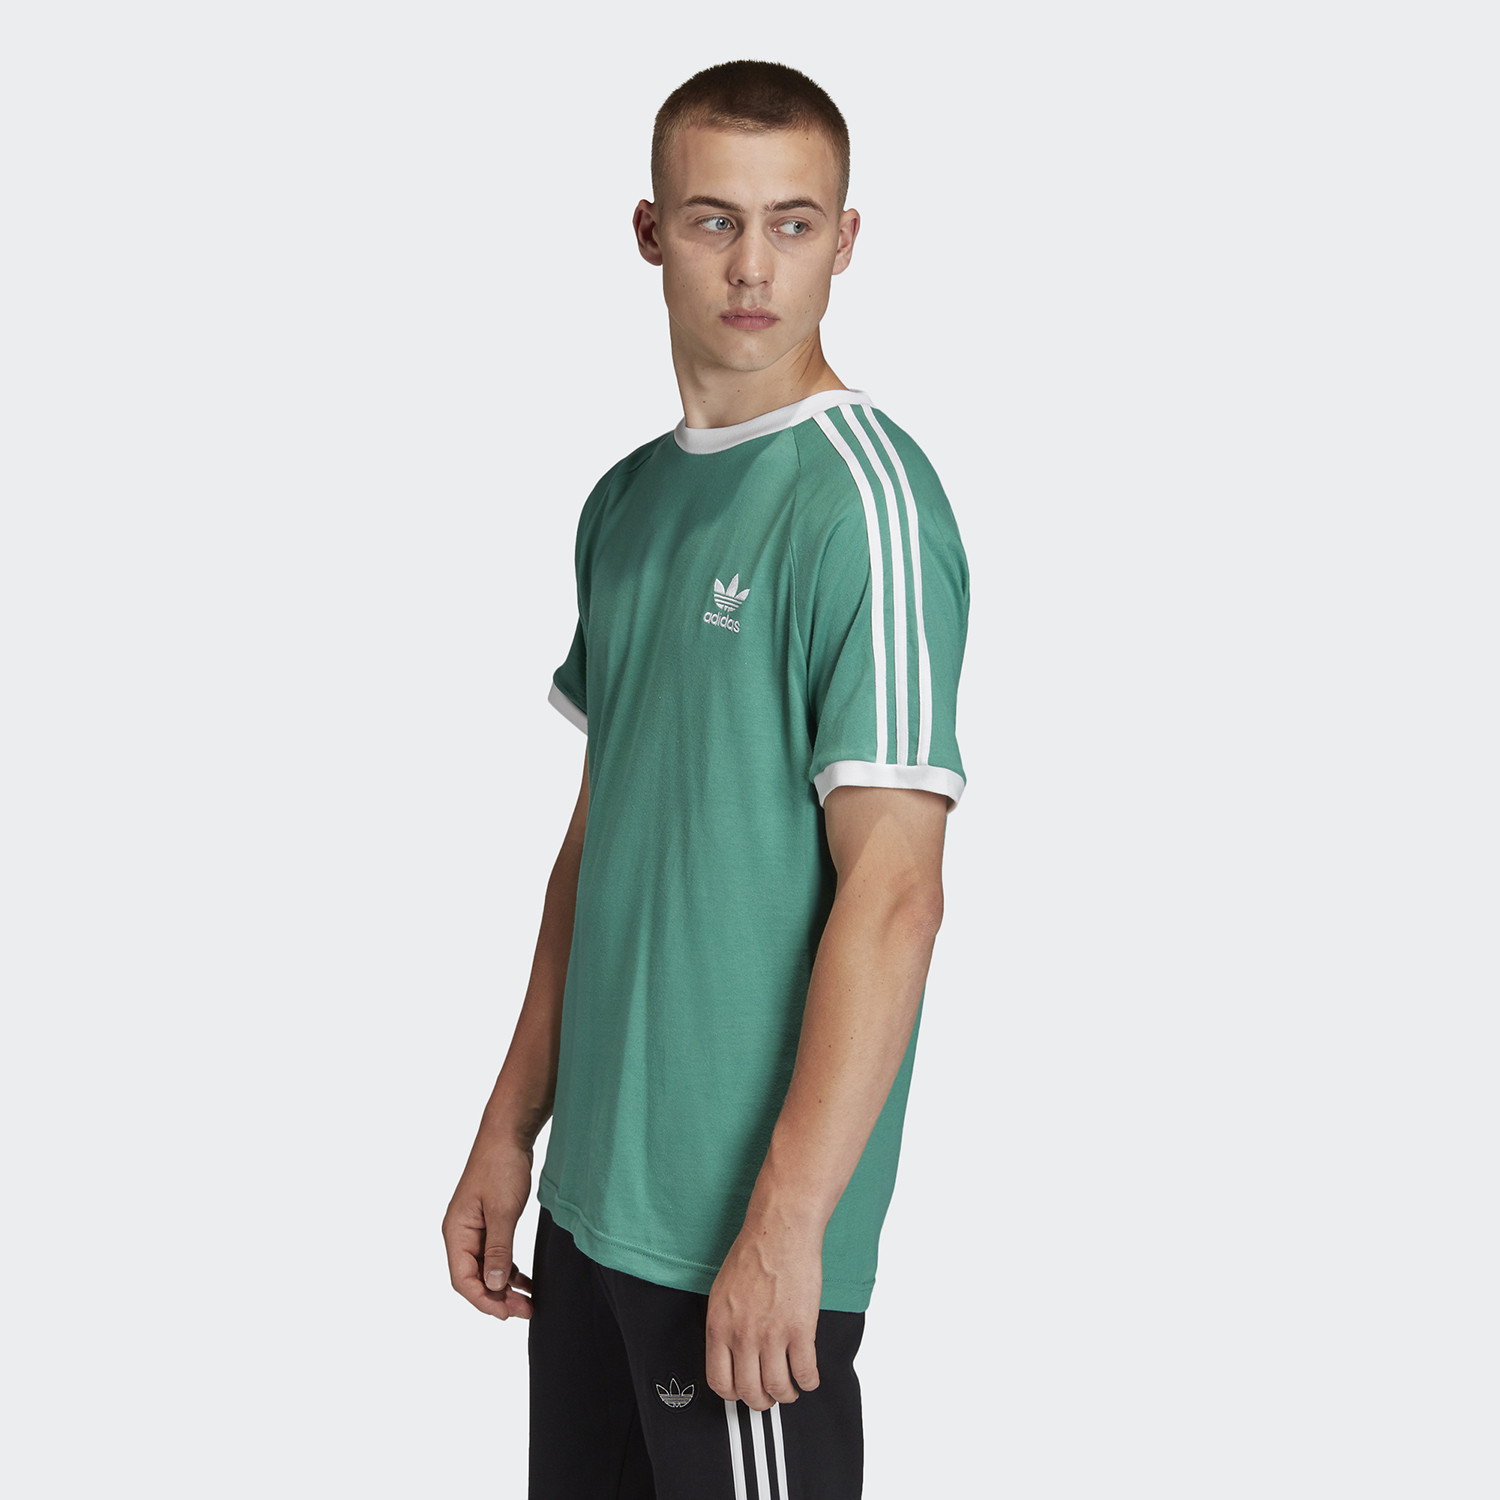 adidas Original 3-Stripes Men's Tee (9000045551_43555)